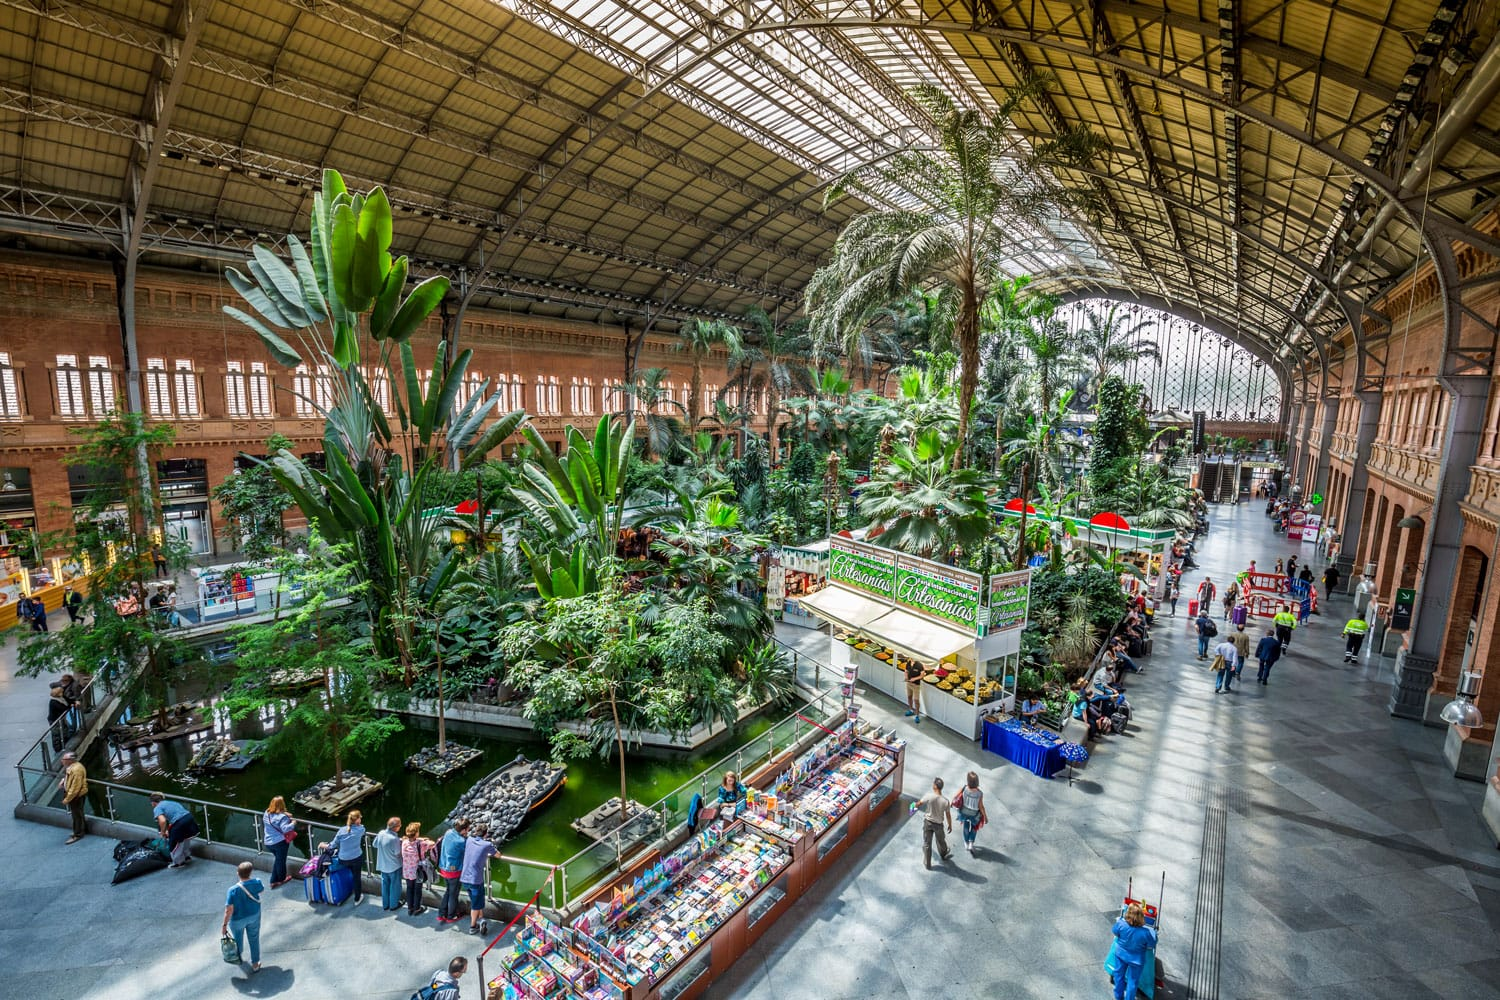 Tropical green house, location in 19th century Atocha Railway Station in Madrid, Spain